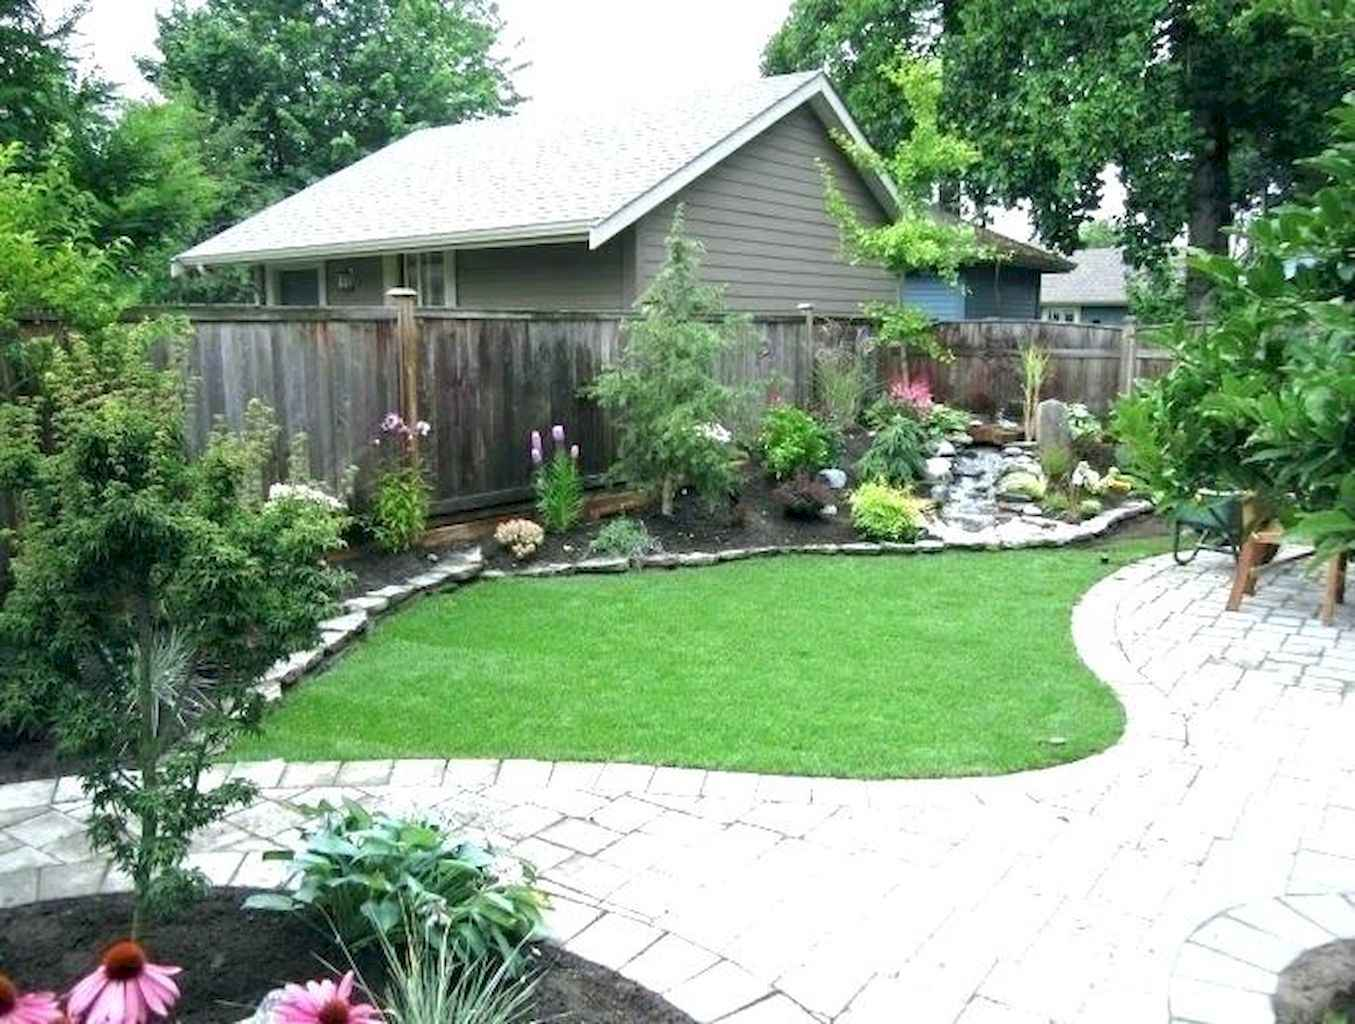 50 simple and beautiful front yard landscaping ideas on a budget